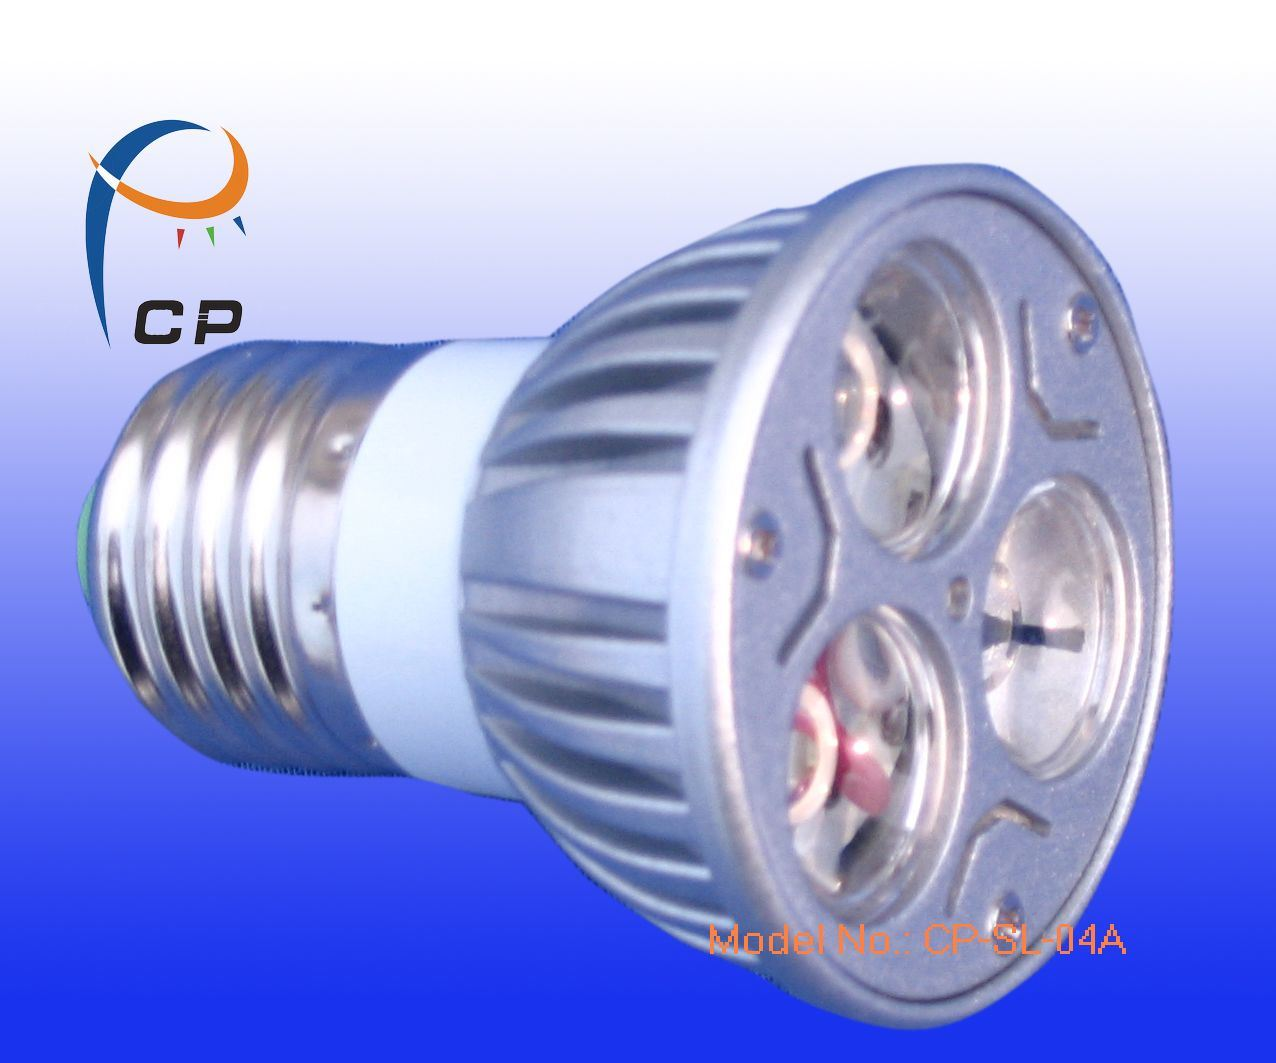 Led Ceiling Lights Made In China : China led ceiling spot light lighting